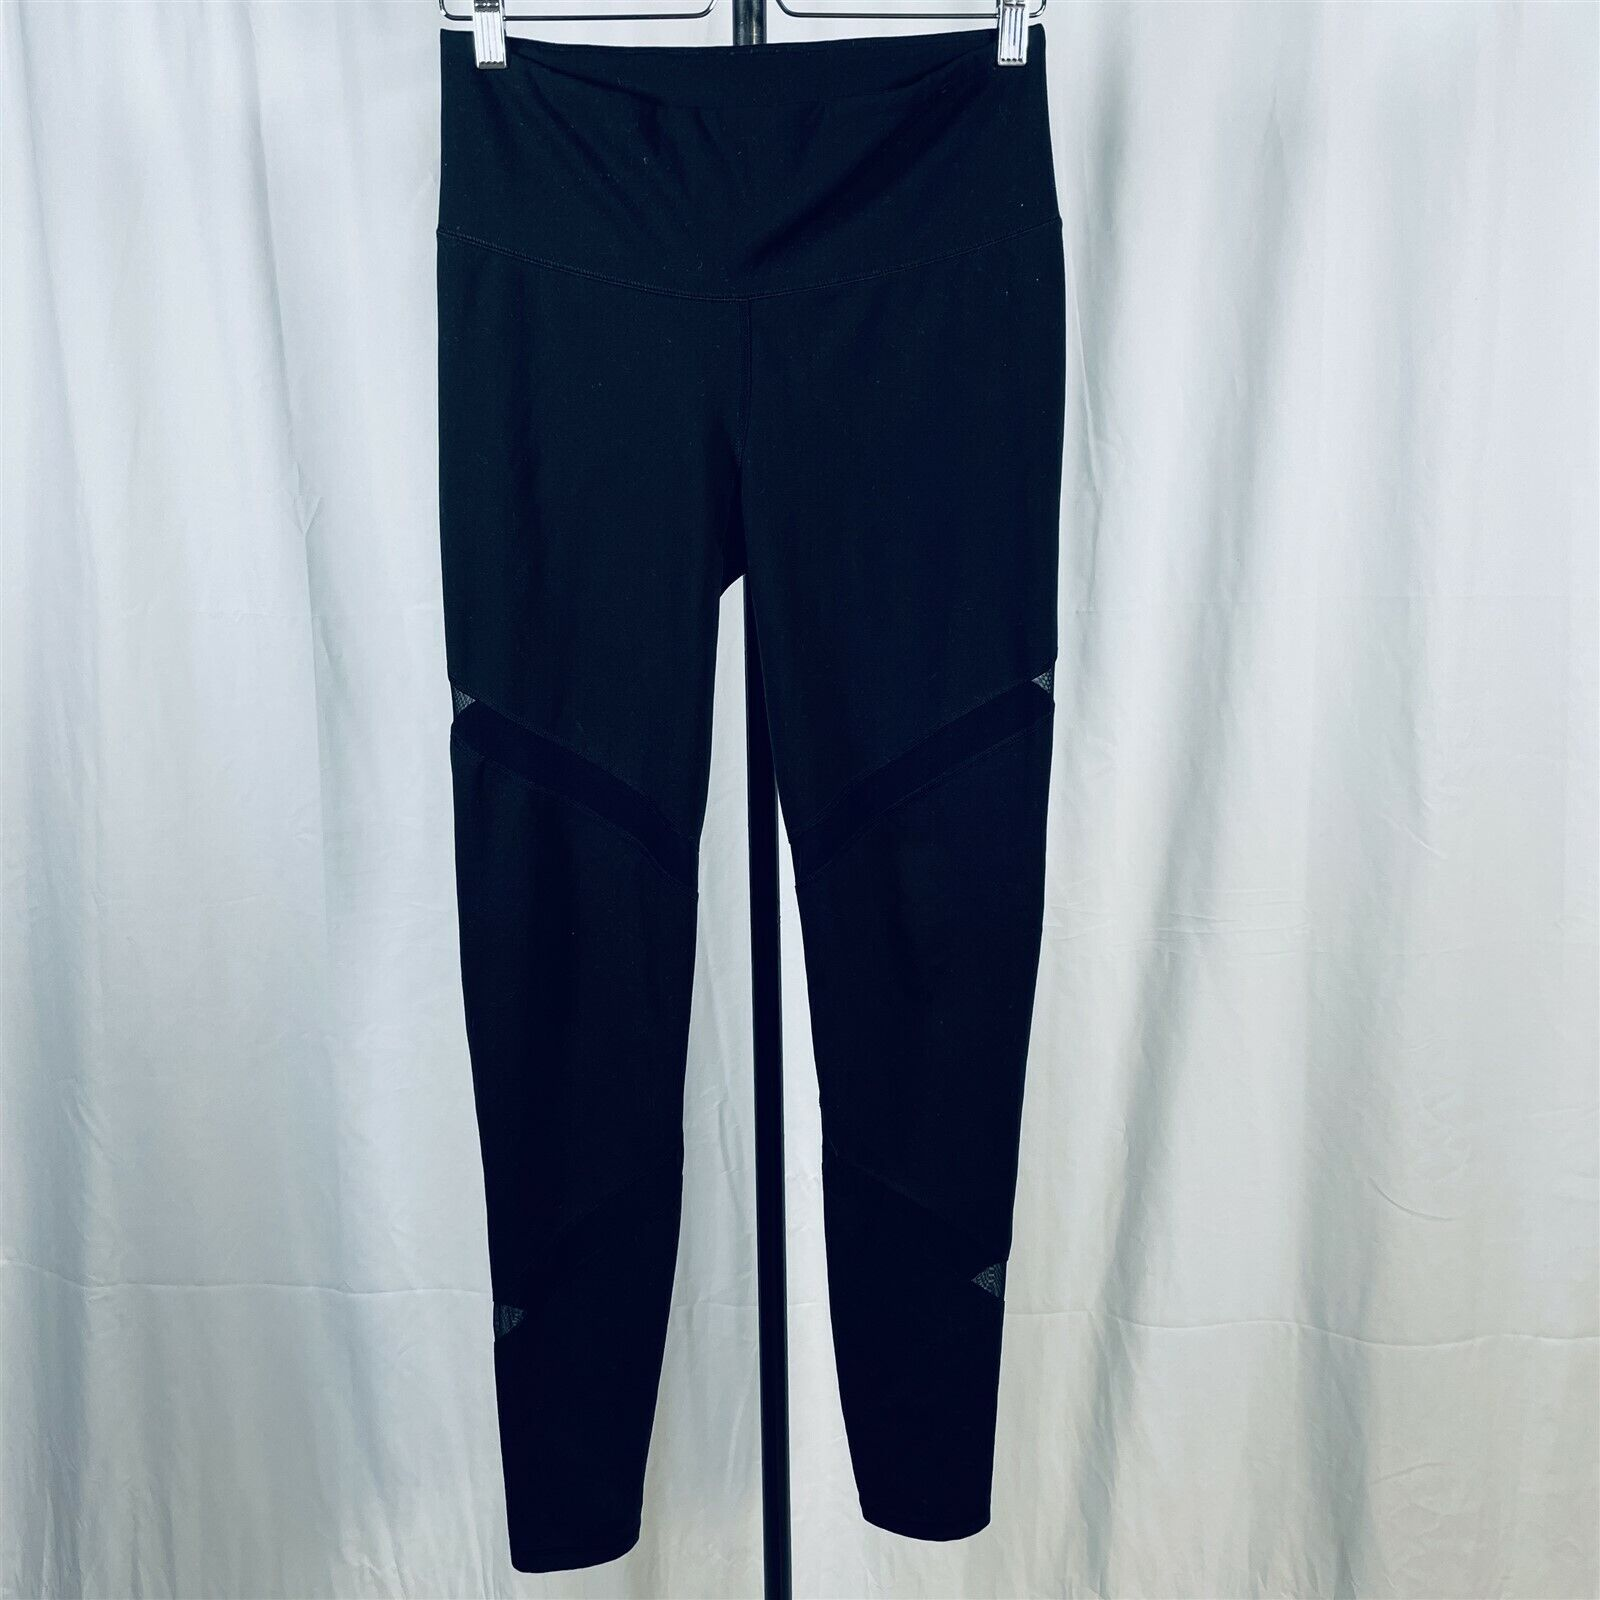 Old Navy Active Leggings Size L High Rise Thick Waistband Go Dry Stretch Black